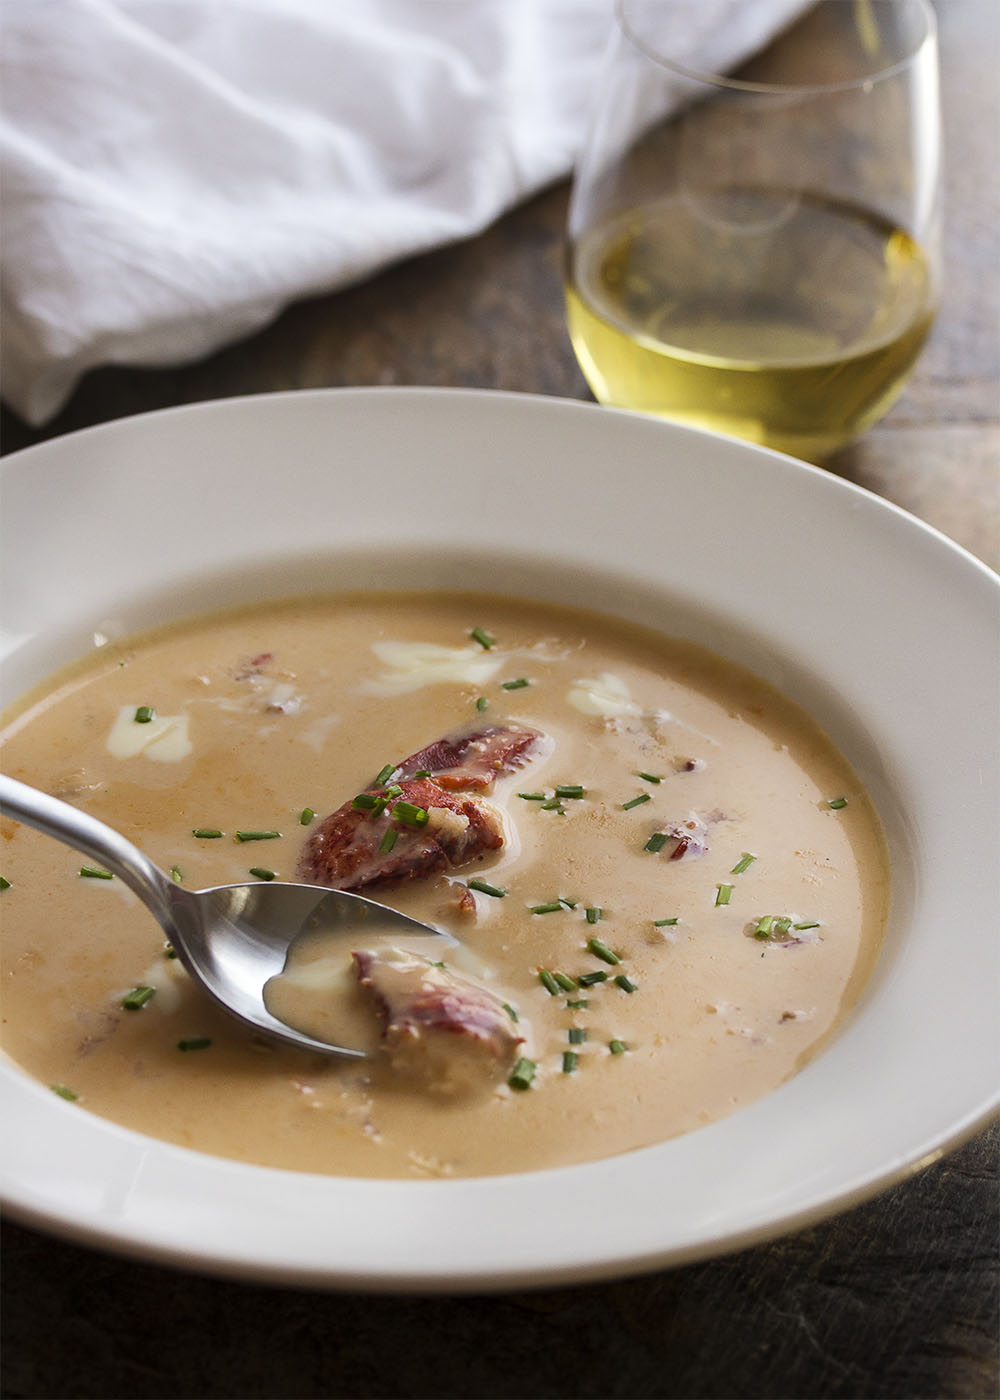 After years of tinkering I've developed a quick lobster bisque that is as fabulous and full of flavor as it is simple and easy to make. | justalittlebitofbacon.com